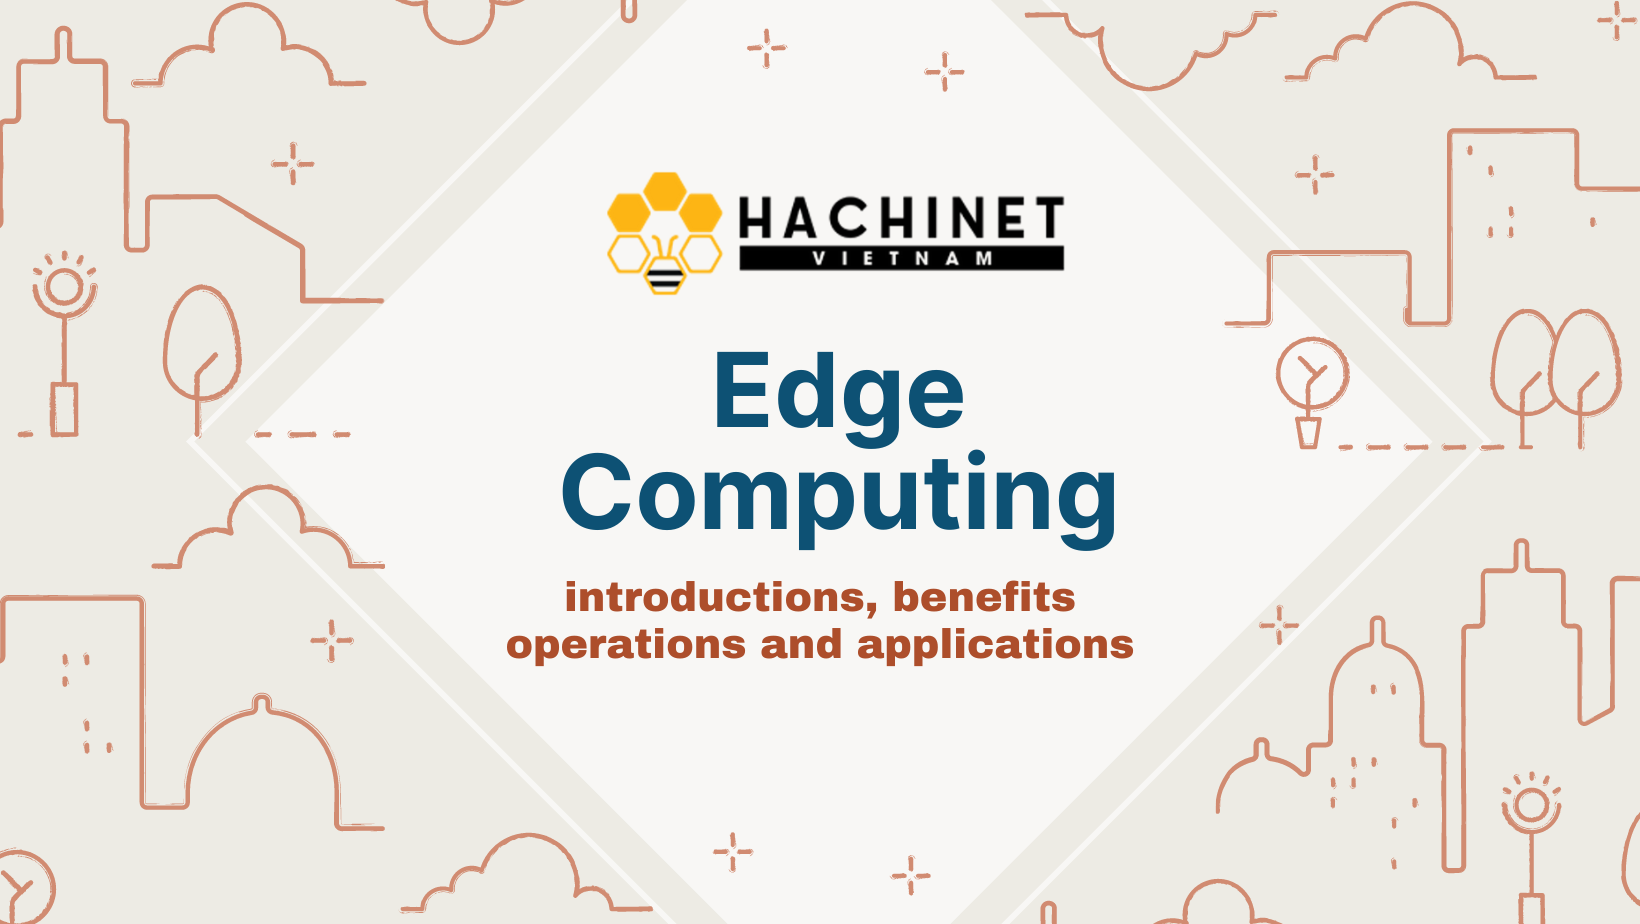 Edge Computing - introductions, benefits operations and applications